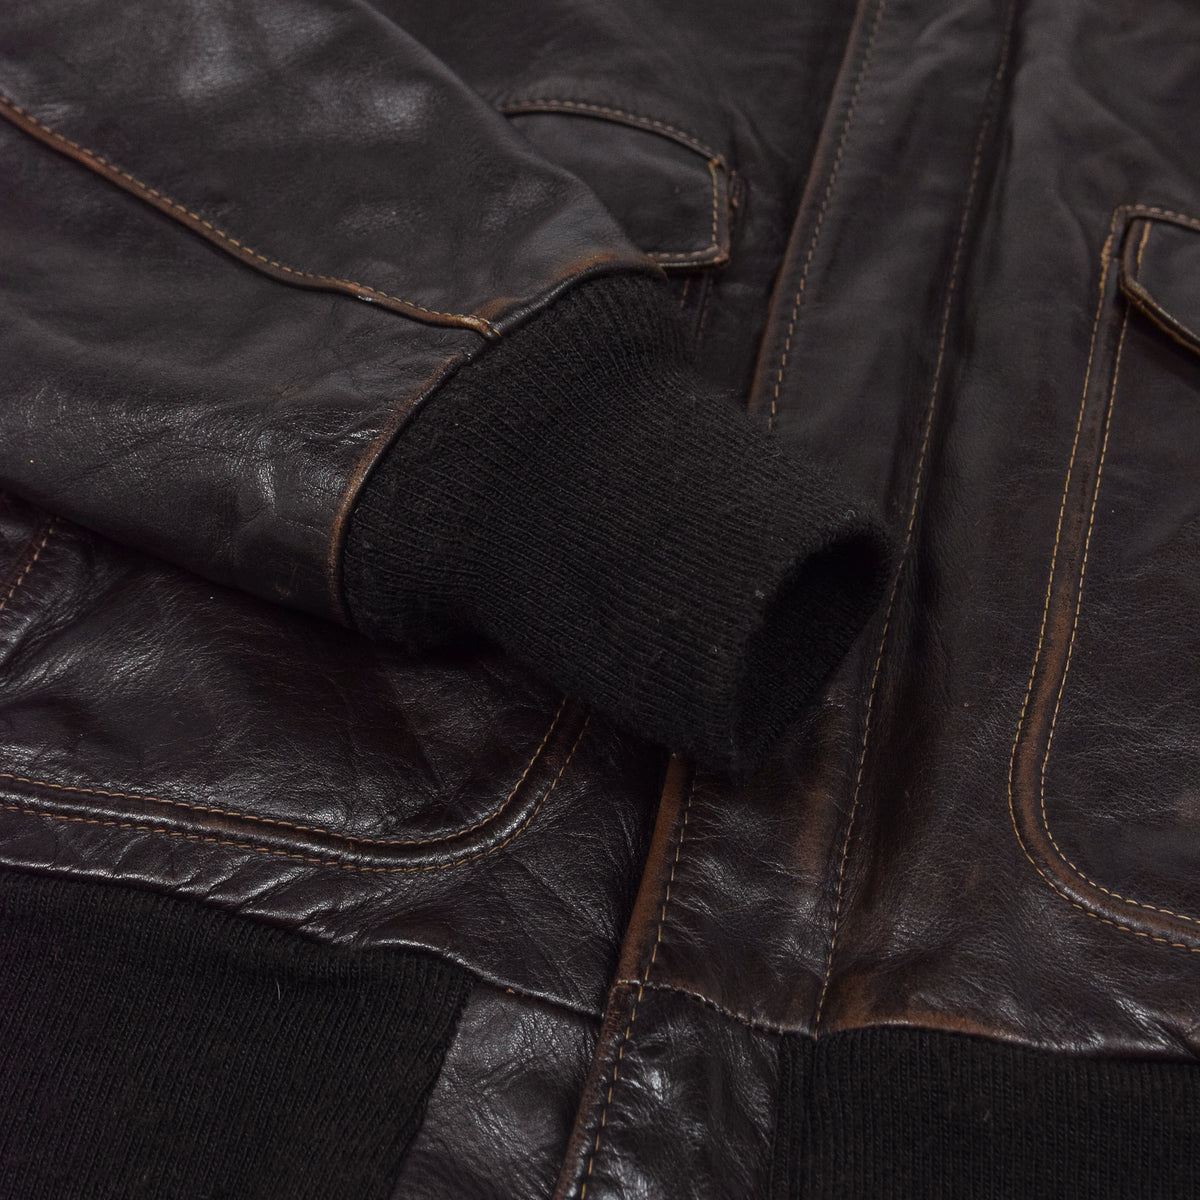 Vintage 80s A-2 Schott Brown Leather Flight Bomber Flying Jacket Made in USA M cuff